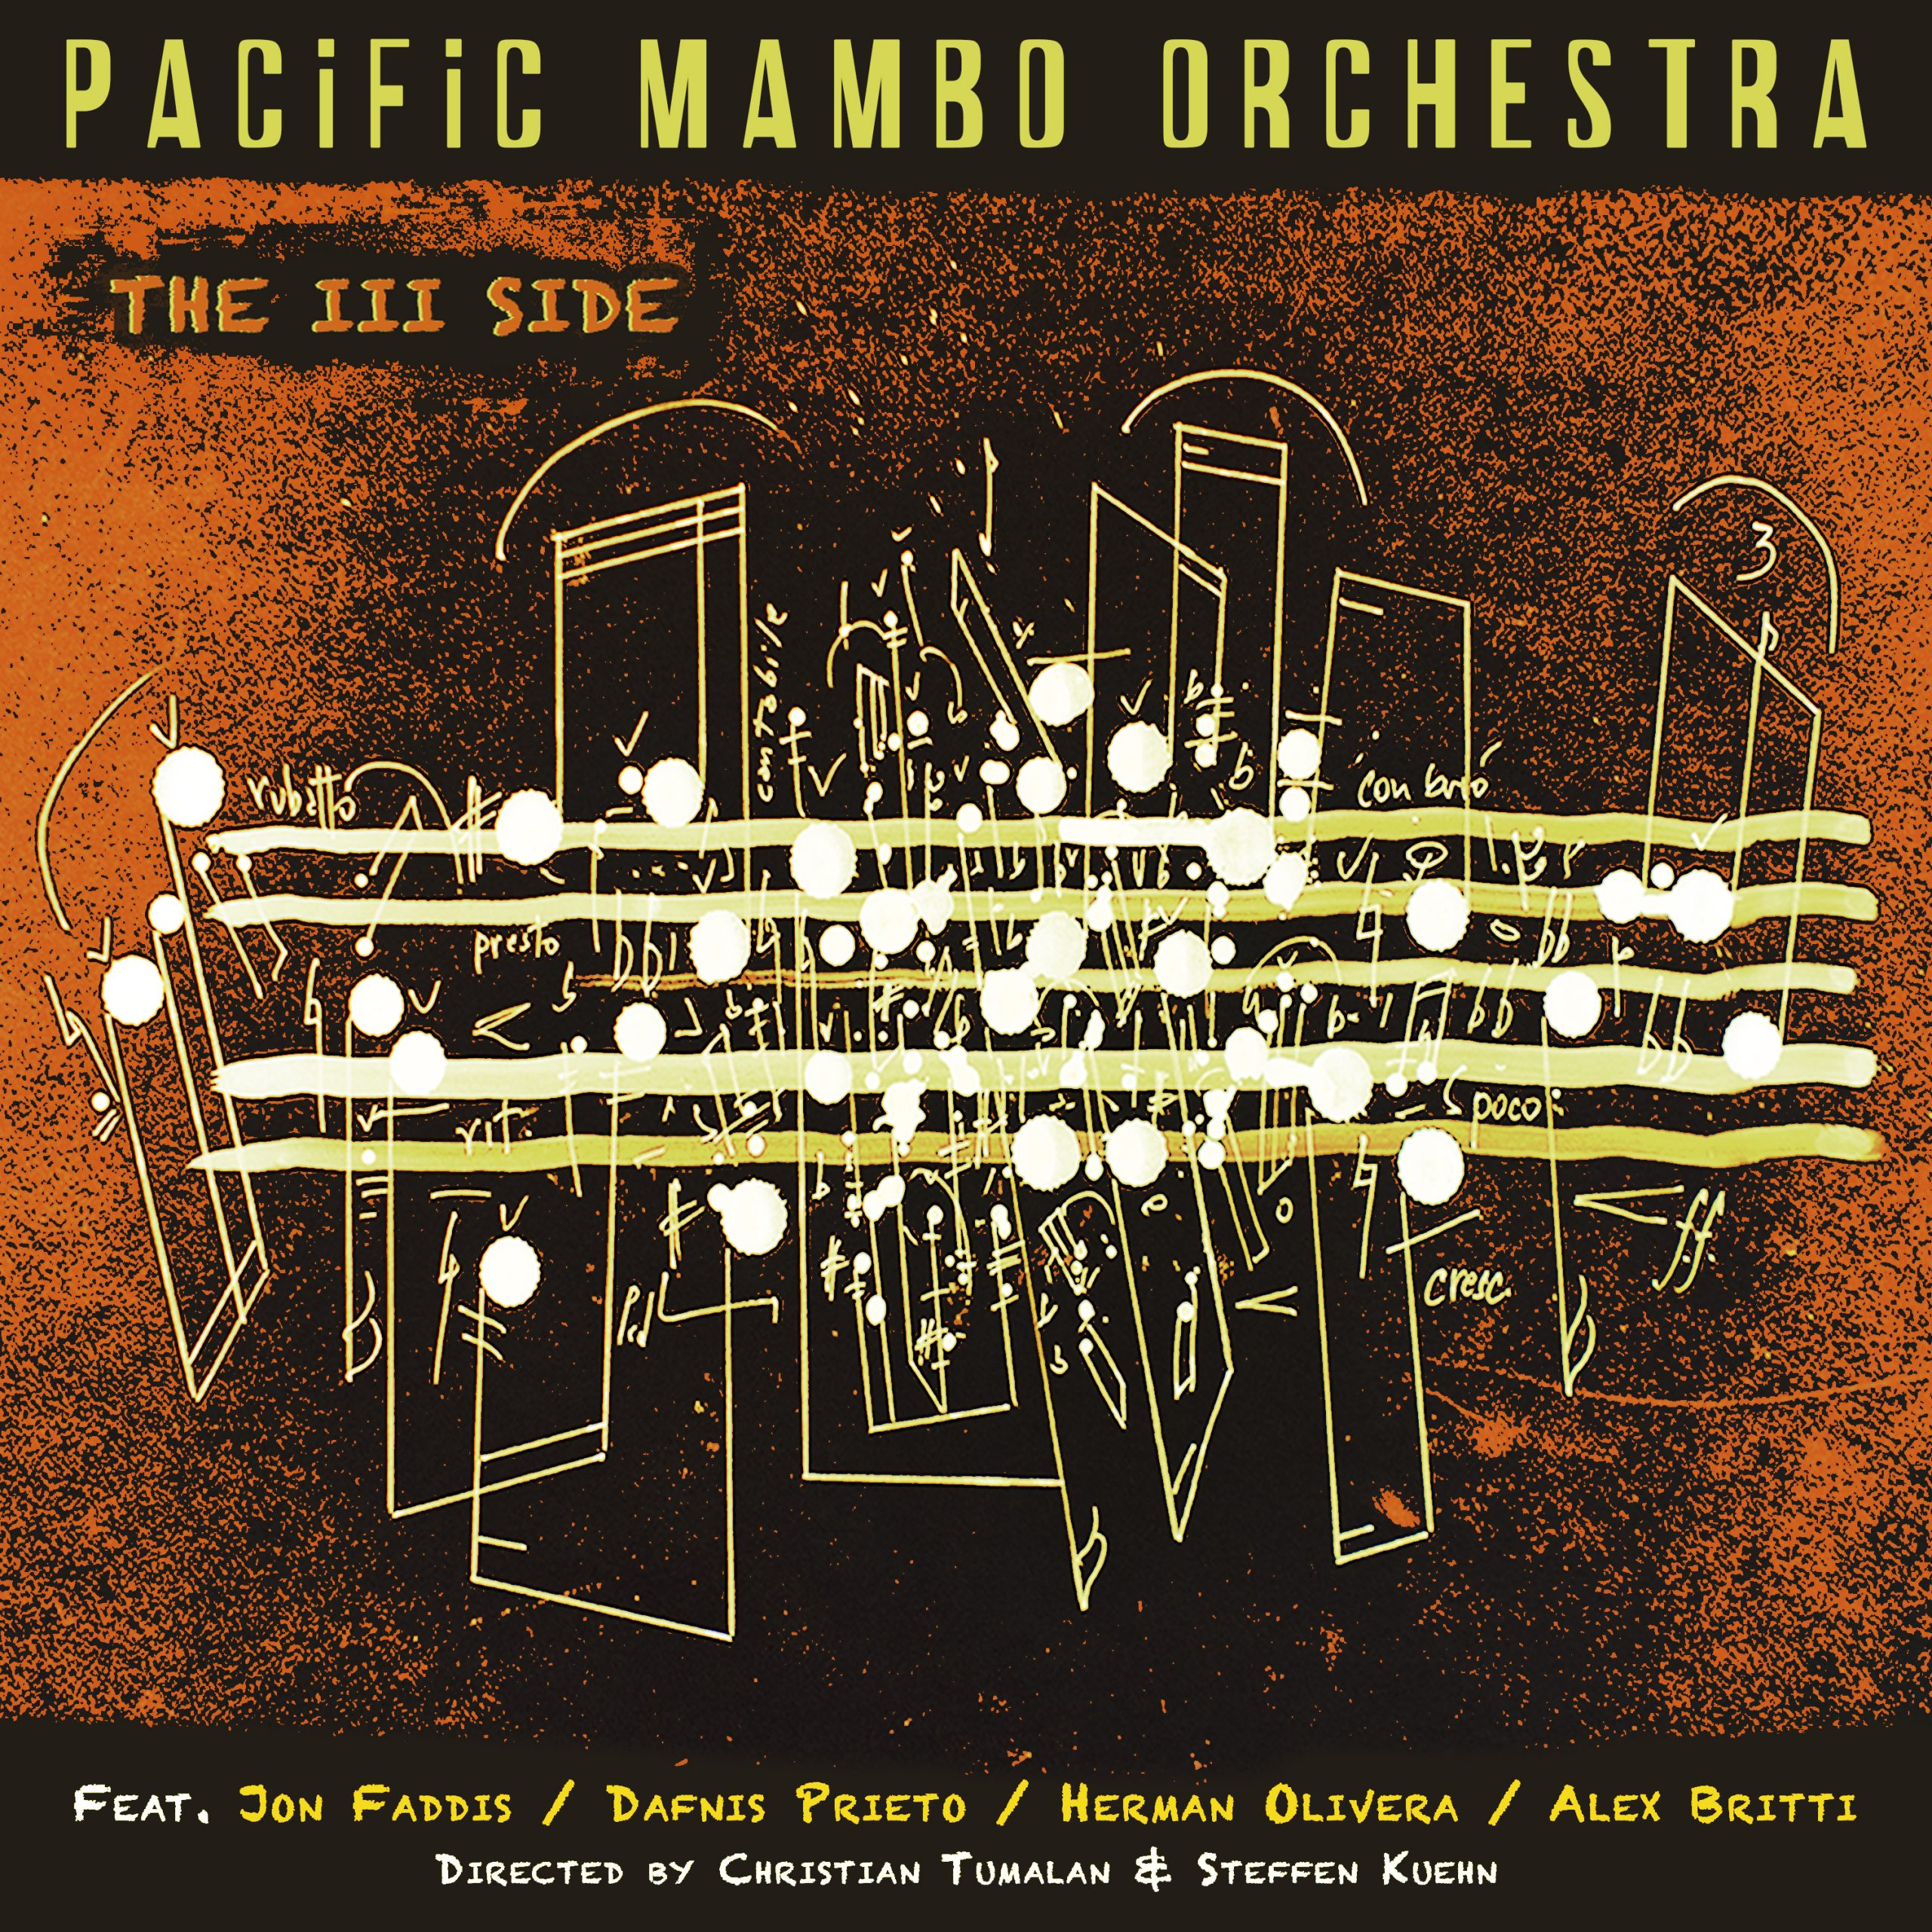 REVIEW: Pacific Mambo Orchestra The lll Side – Making A Scene